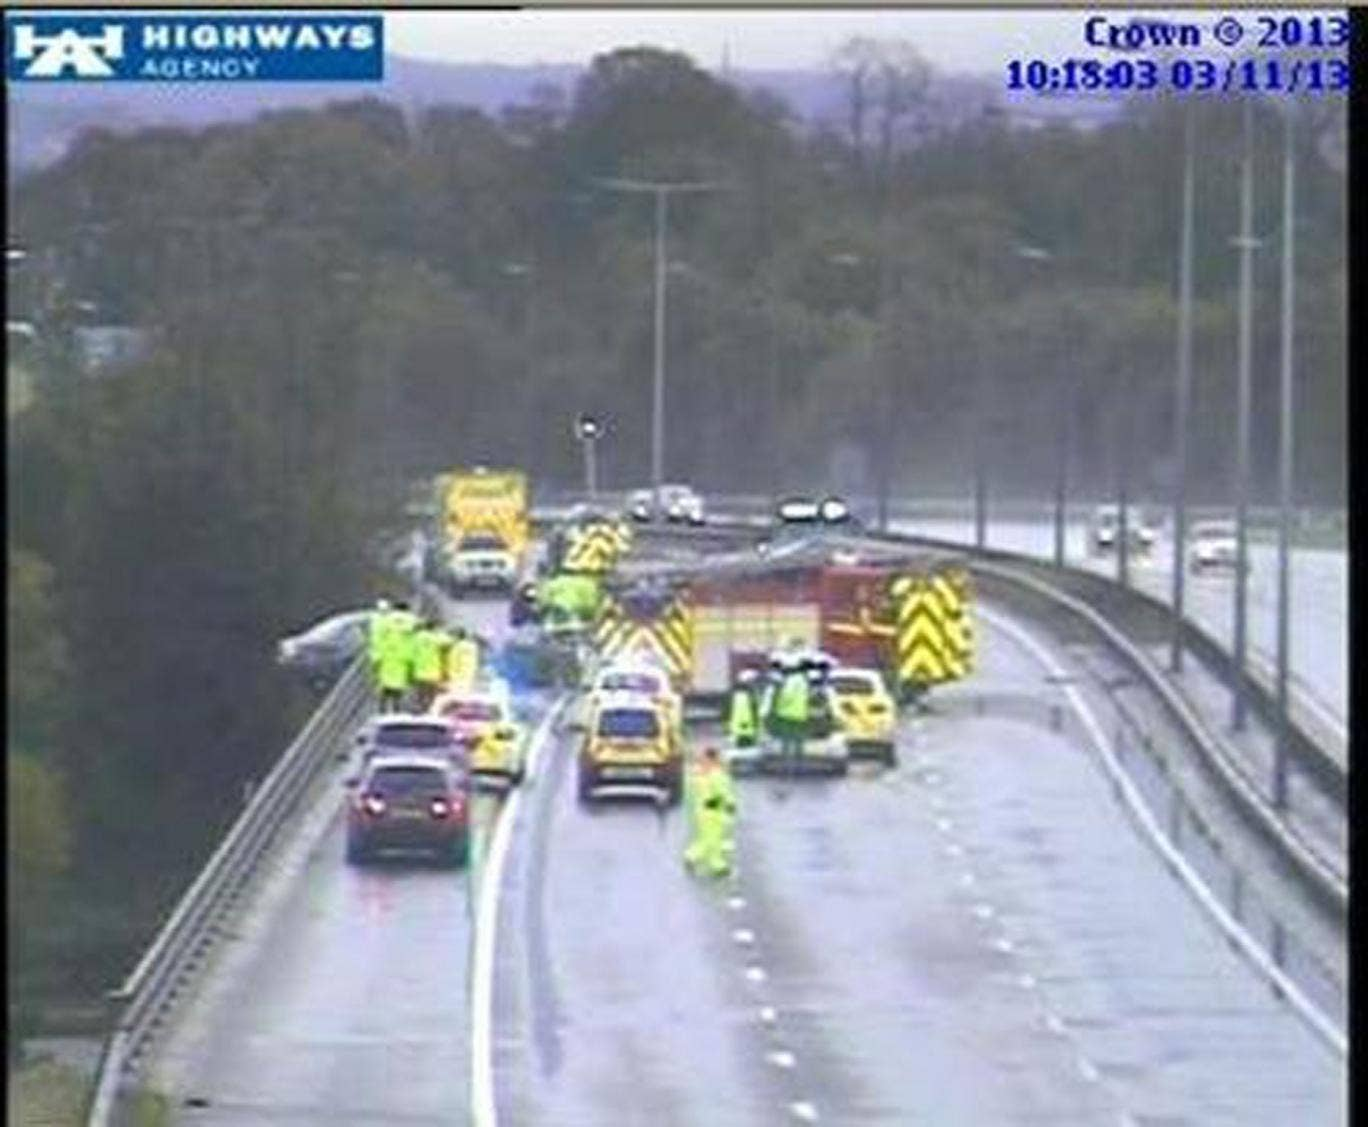 Dramatic images from the Highways Agency show the vehicle teetering over the edge of the M6 carriageway at junction 23, near Haydock.